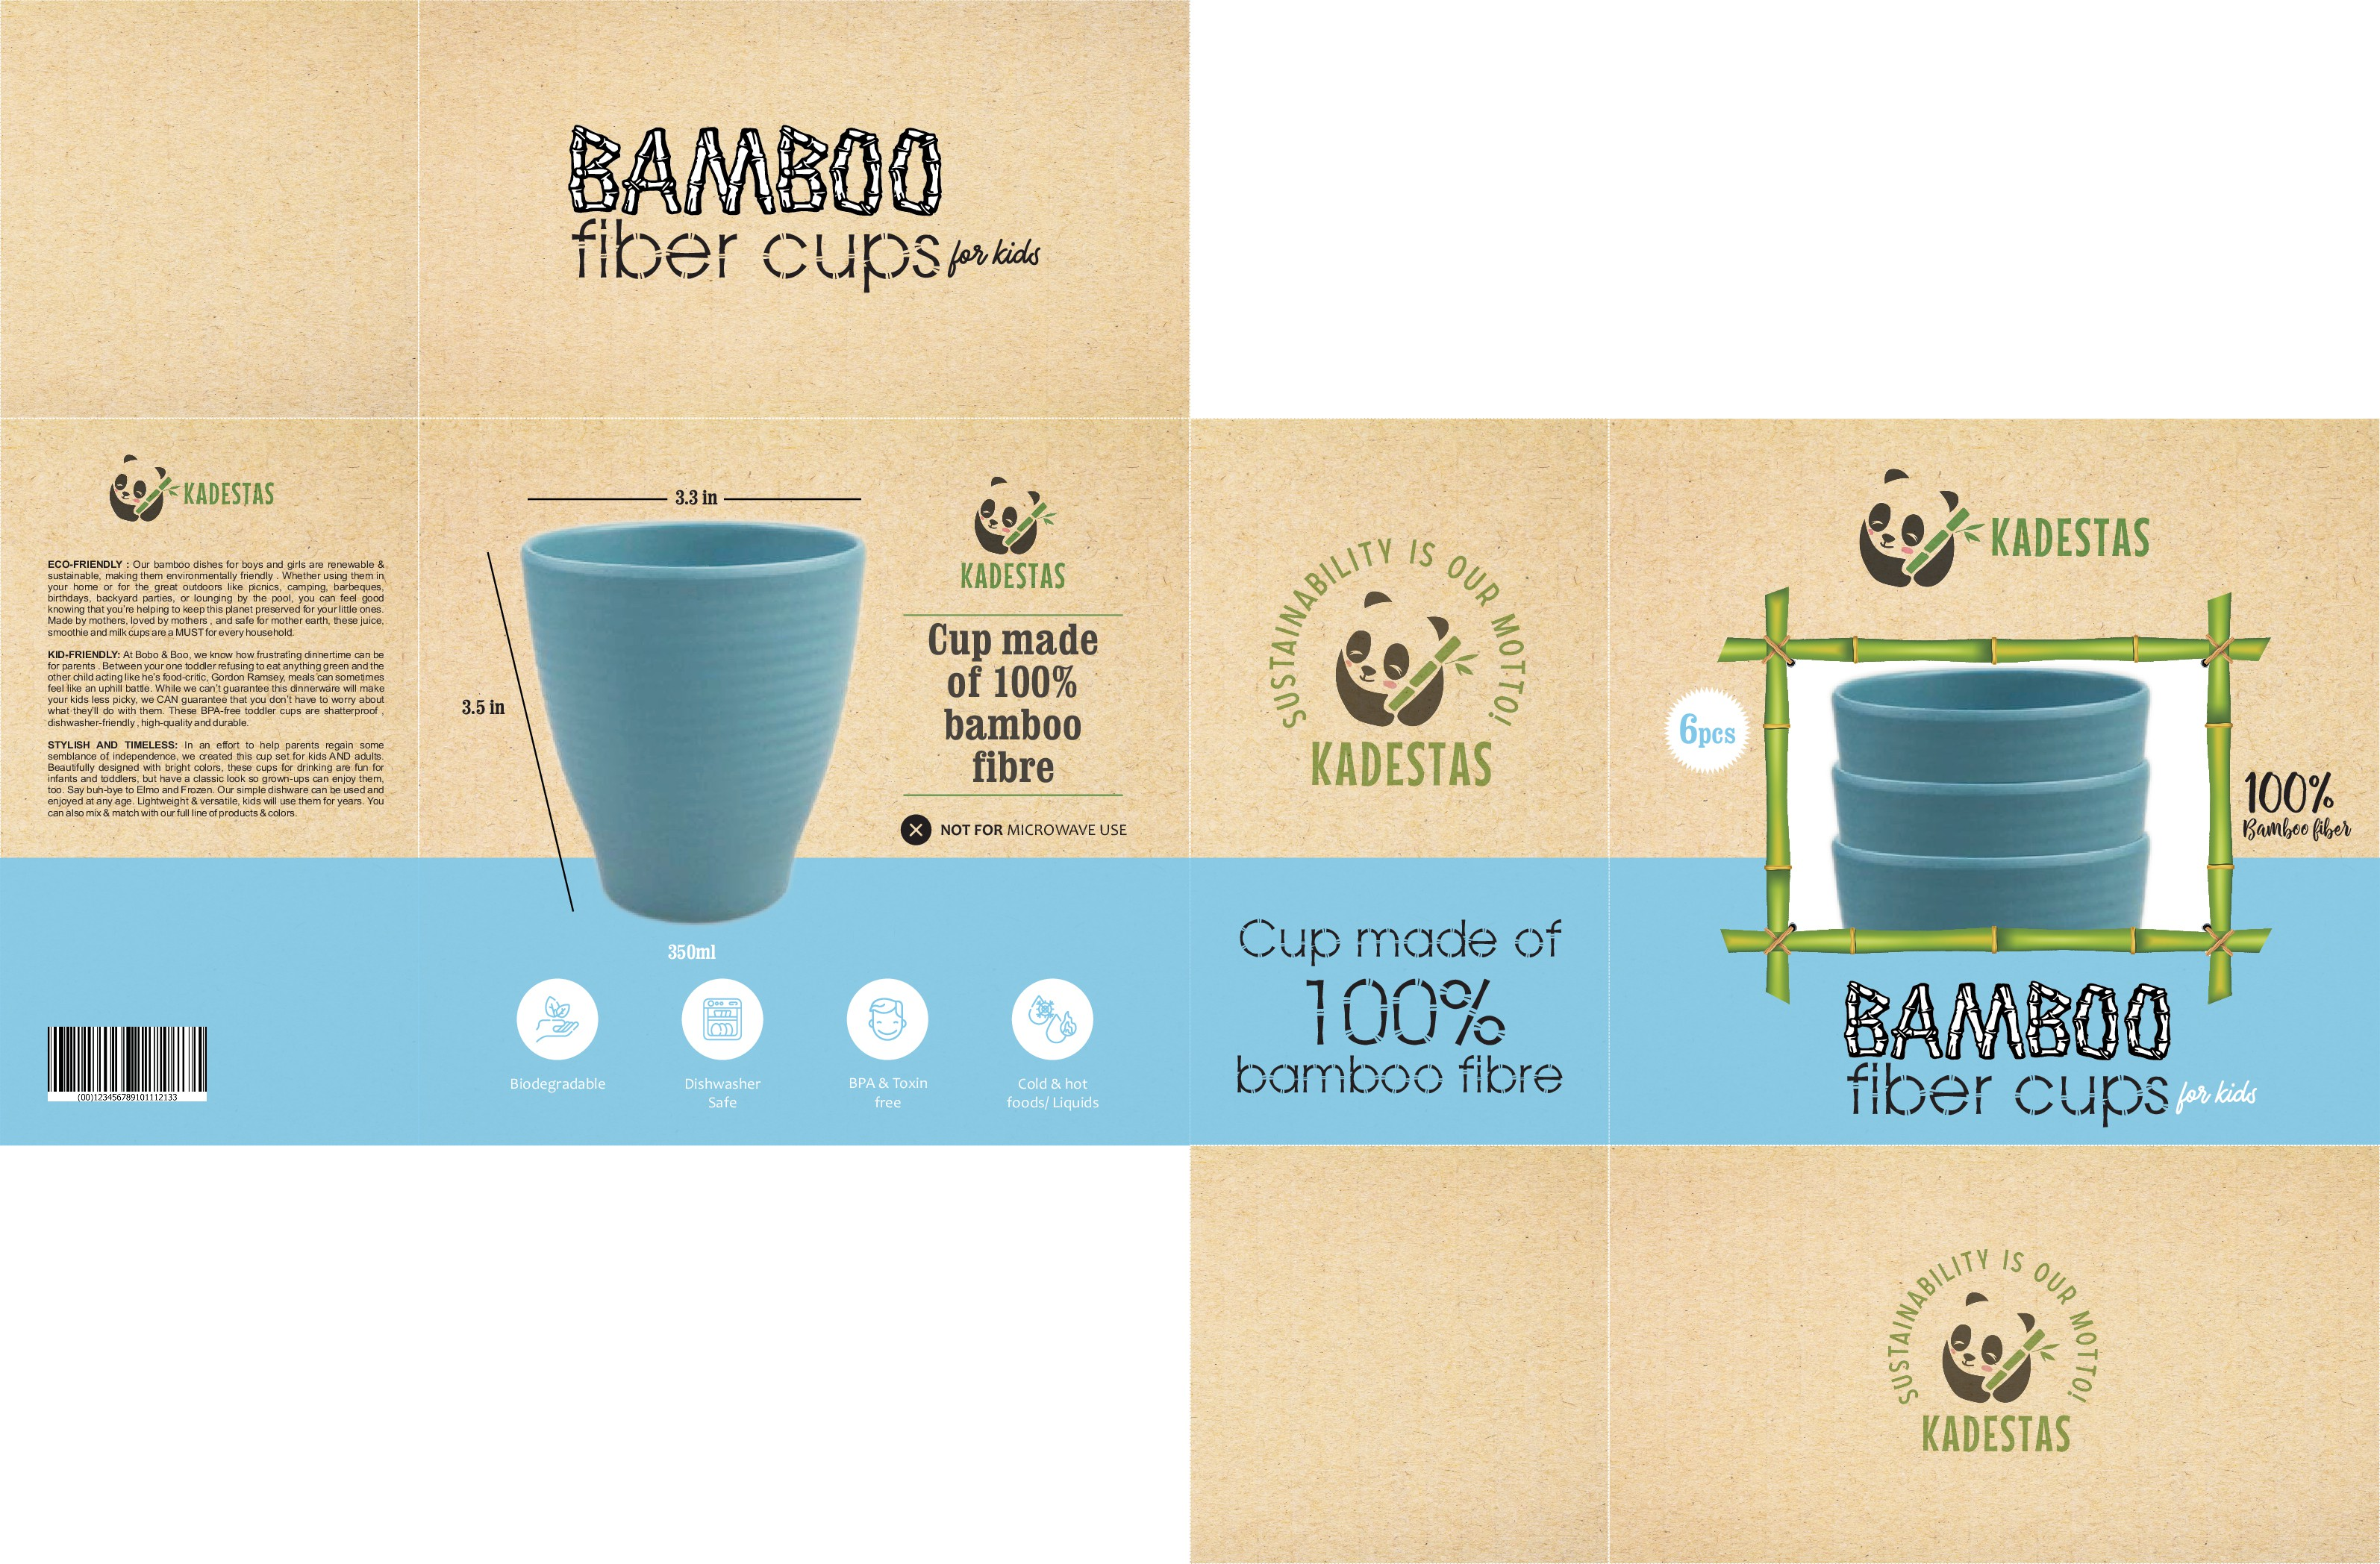 Bamboo fibre cups packaging artwork